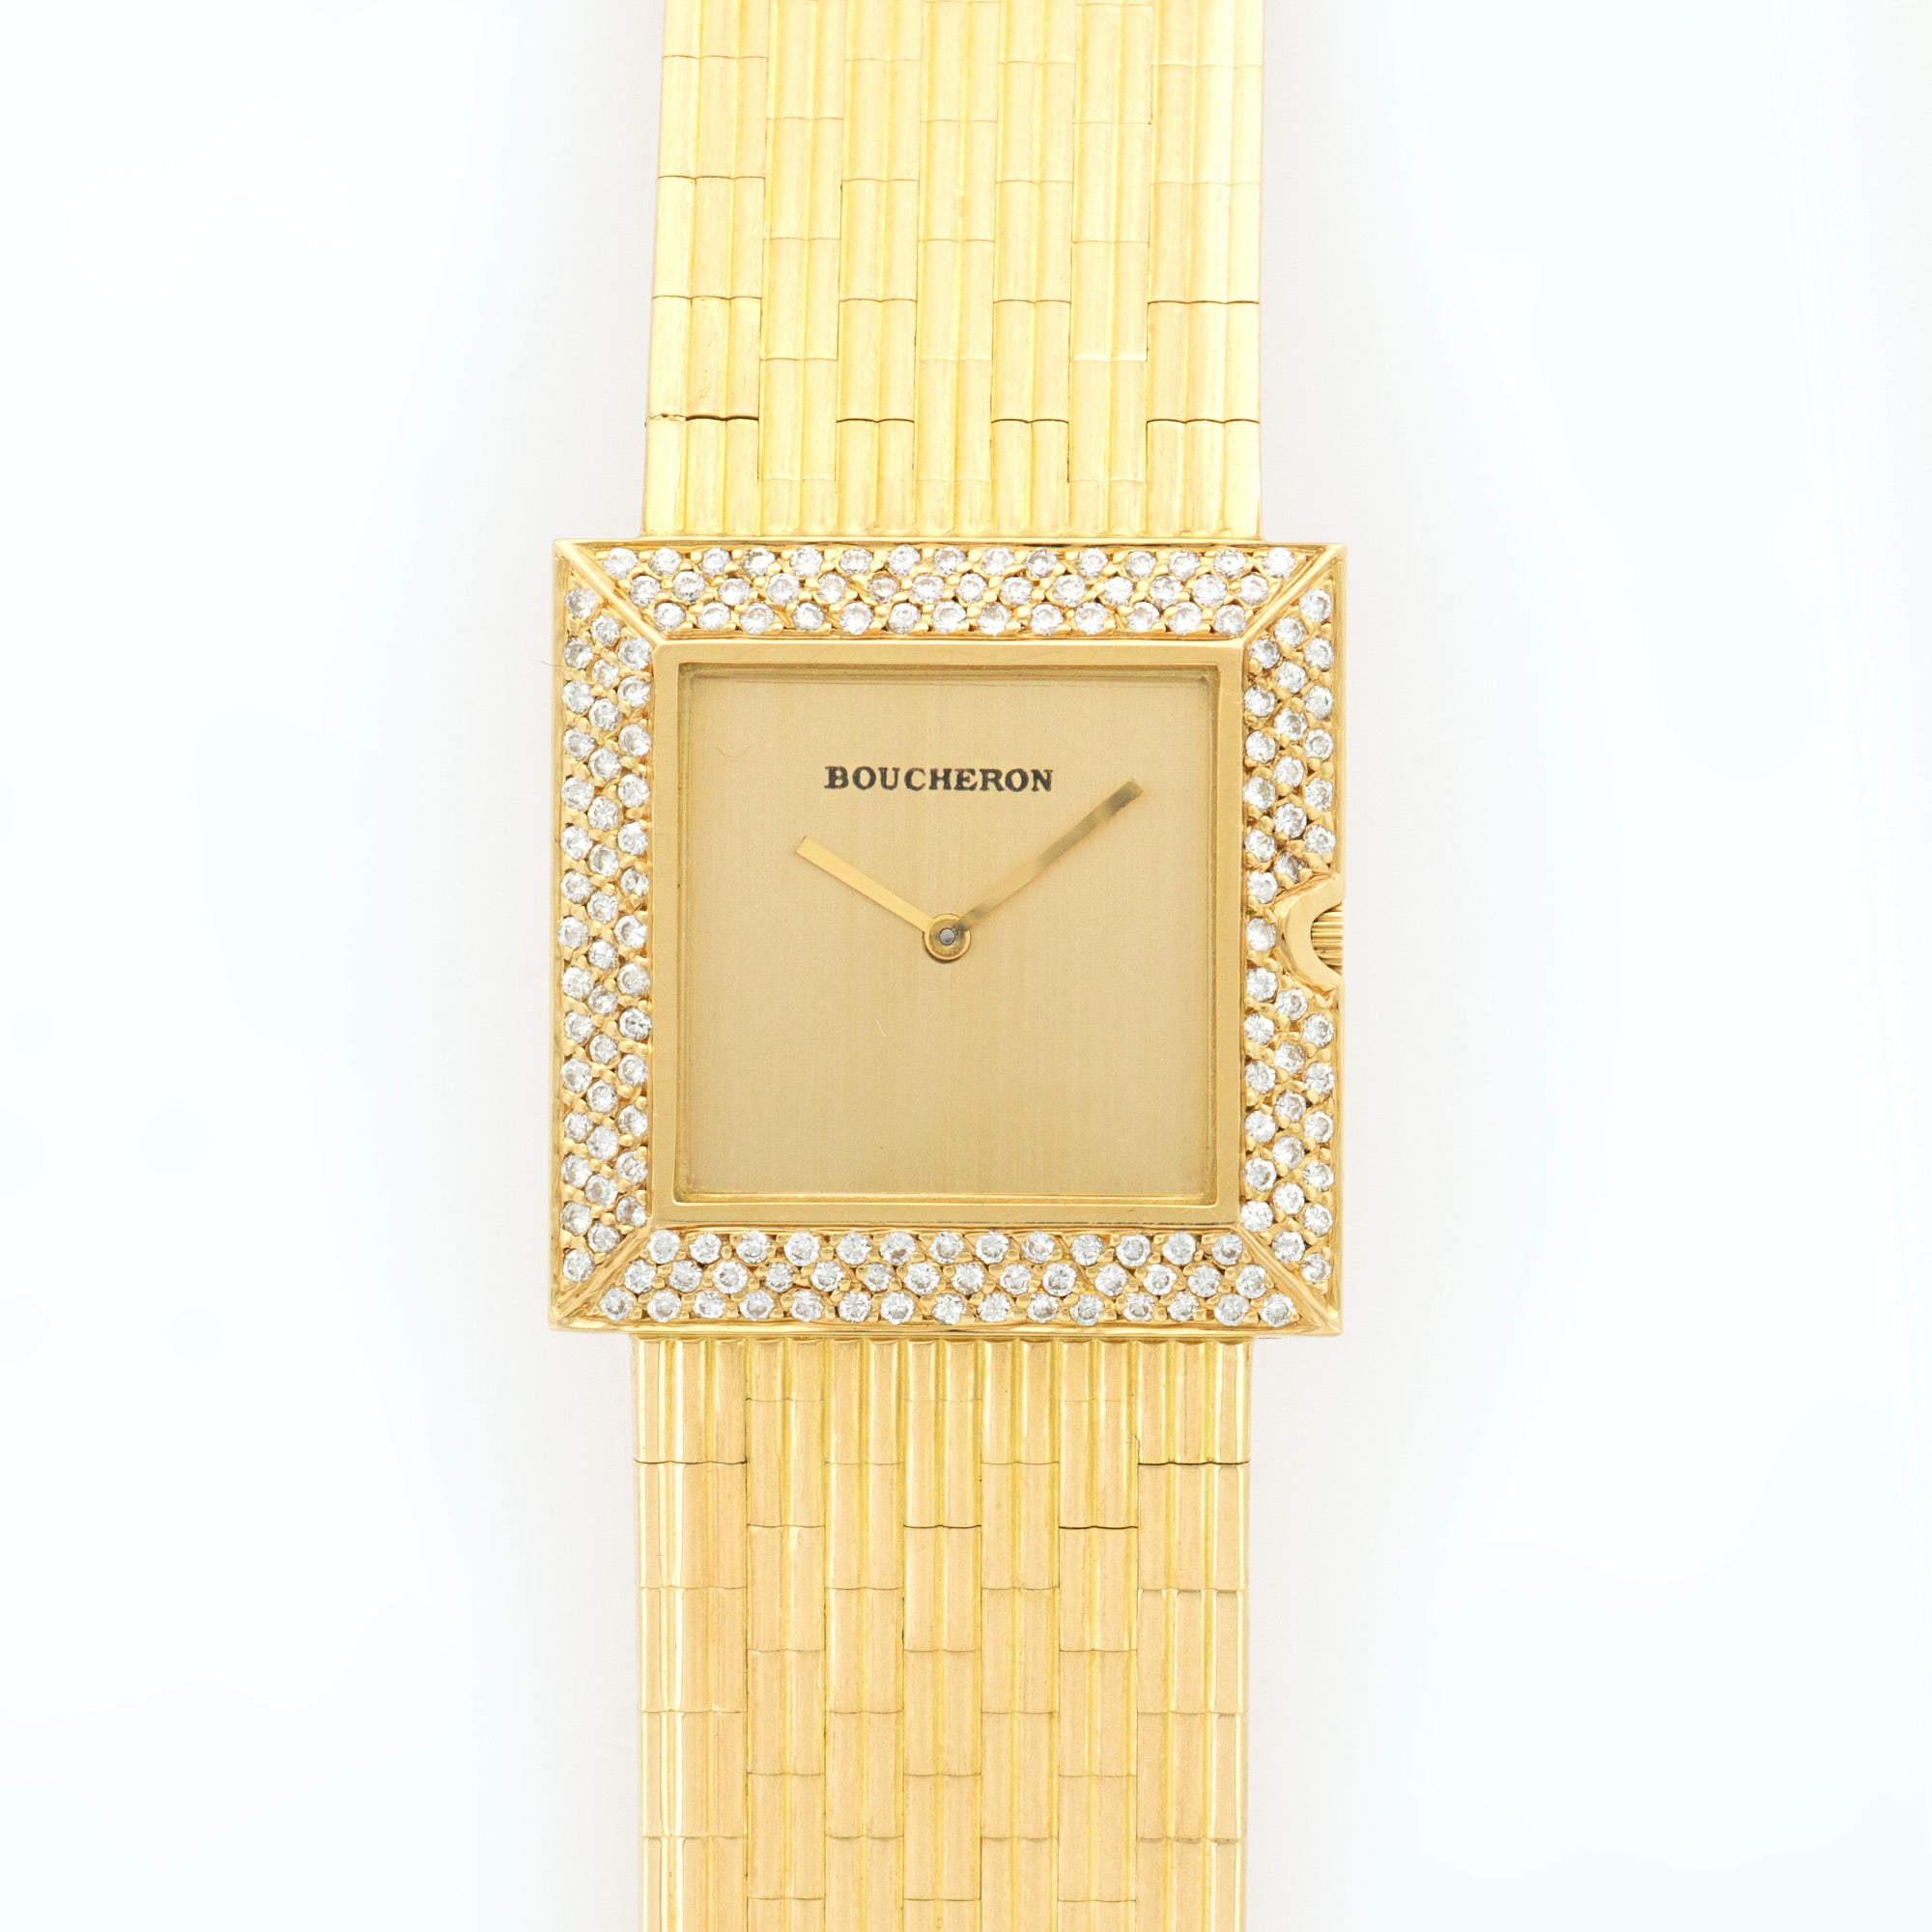 Boucheron Vintage N/A 18k YG  Mint Ladies 18k YG Champagne 26mm Quartz 1980s Yellow Gold Bracelet (7.5 inches) N/A